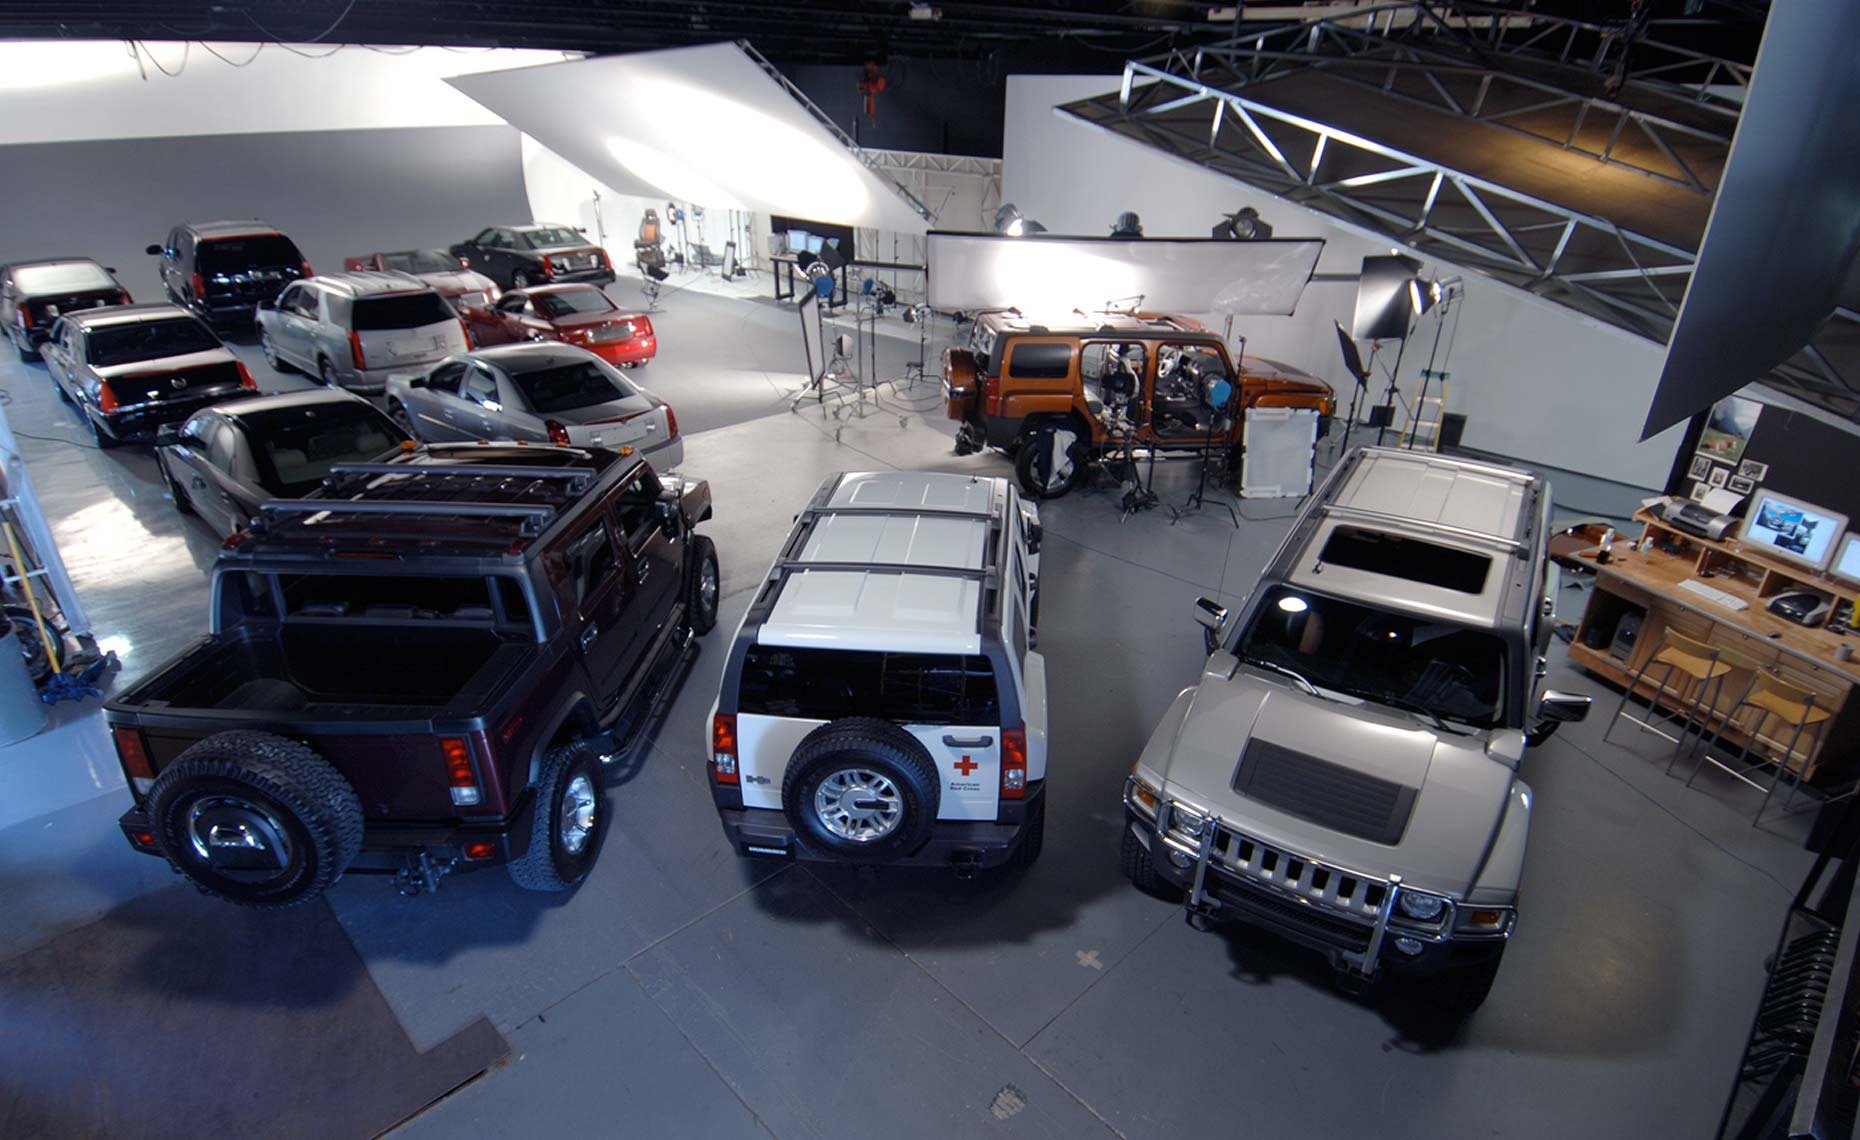 studio behind the scenes-14 cars.jpg